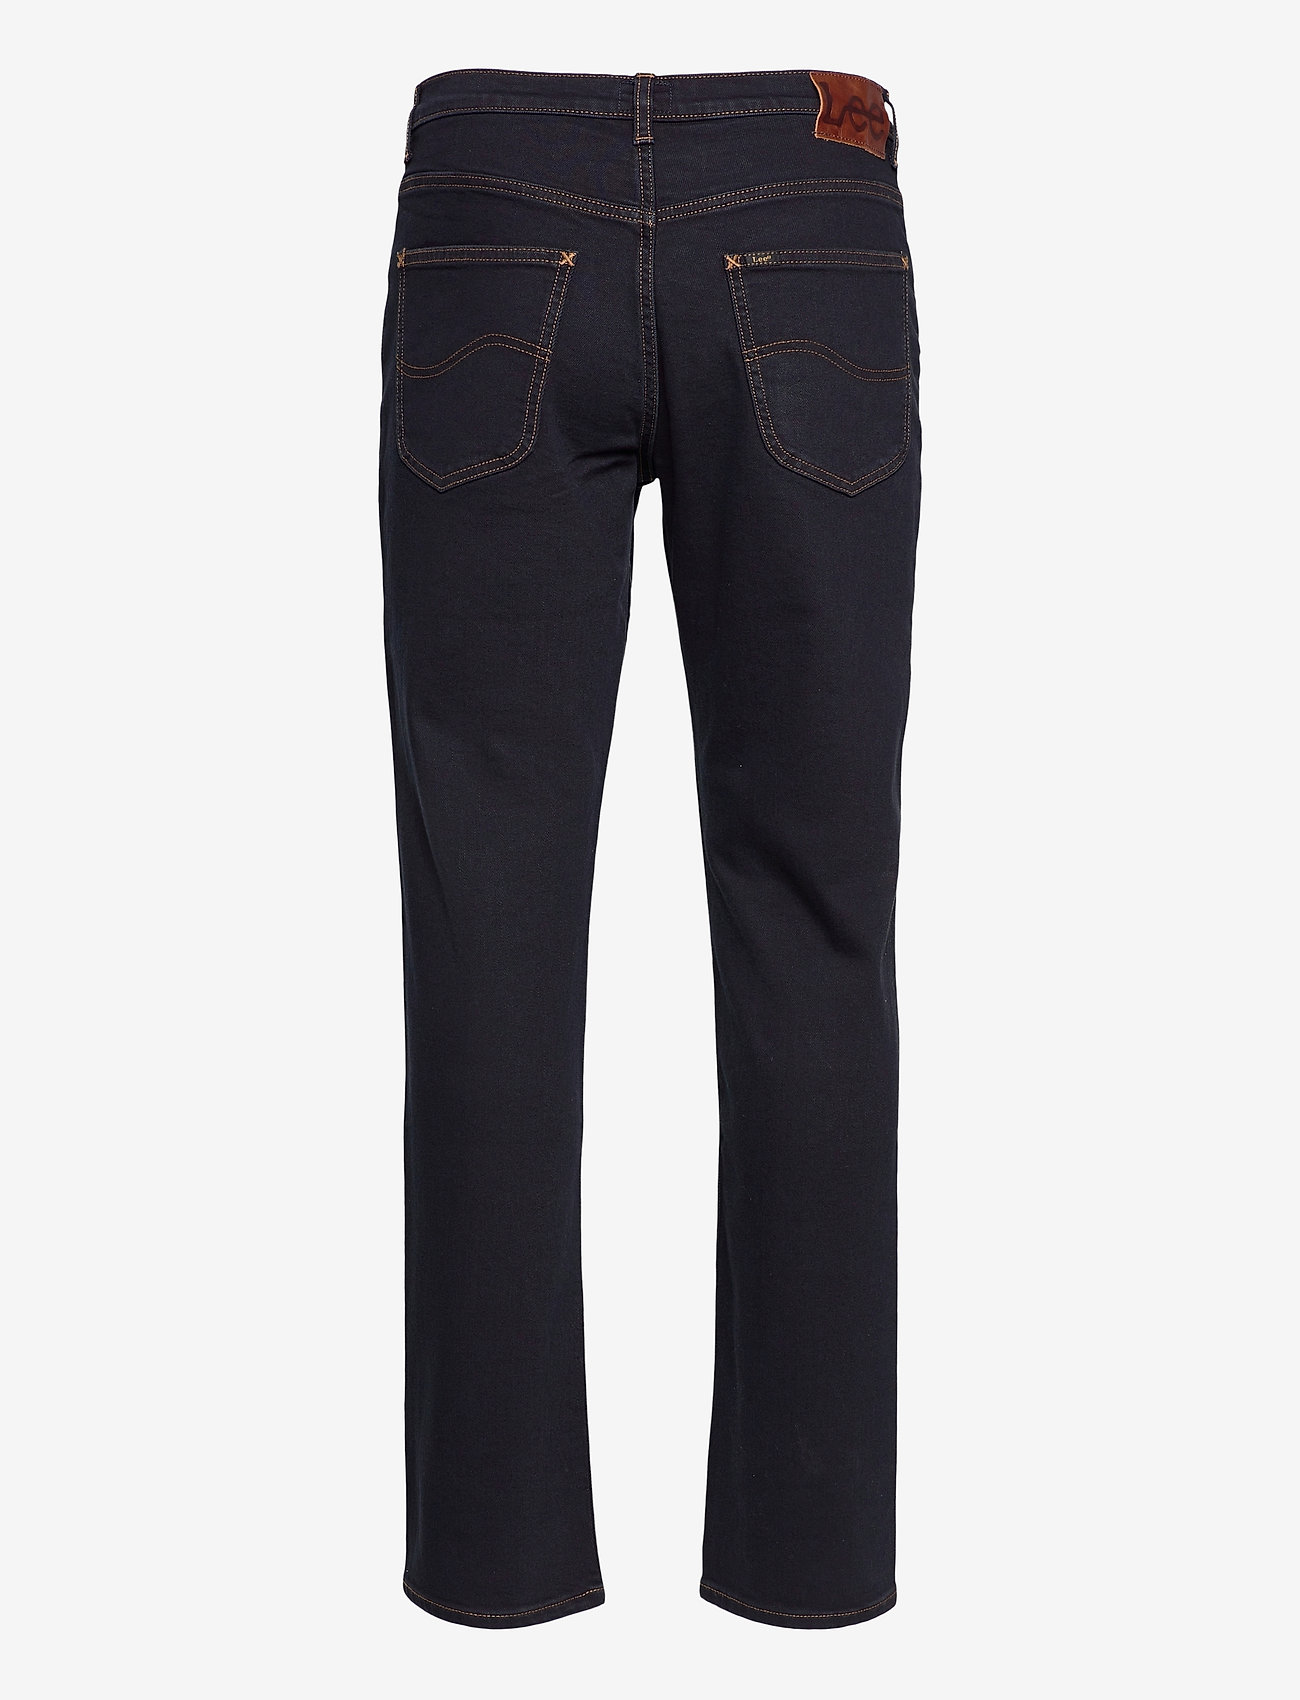 Lee Jeans - BROOKLYN STRAIGHT - relaxed jeans - blue black - 1